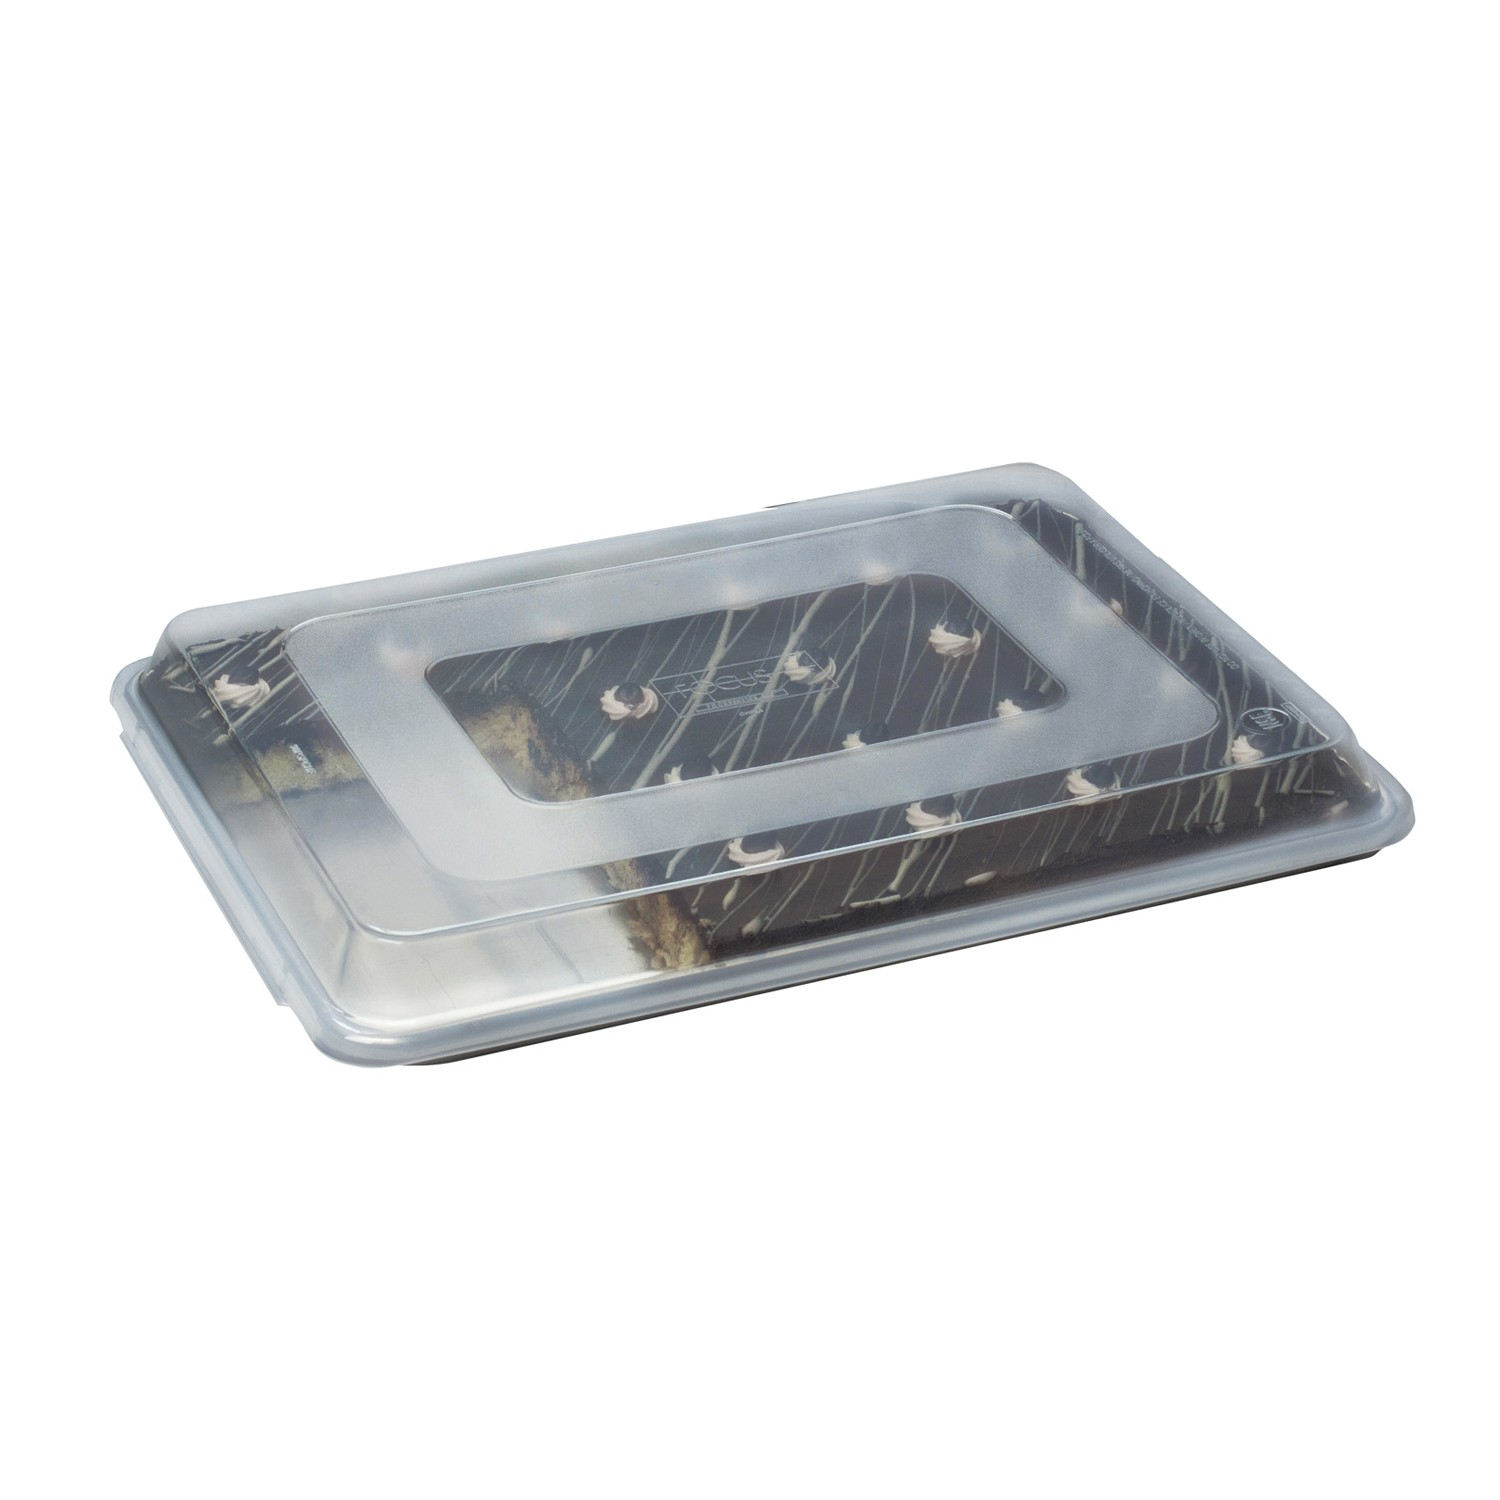 Focus Foodservice 90PSPCQT Quarter Size Plastic Sheet Pan Cover